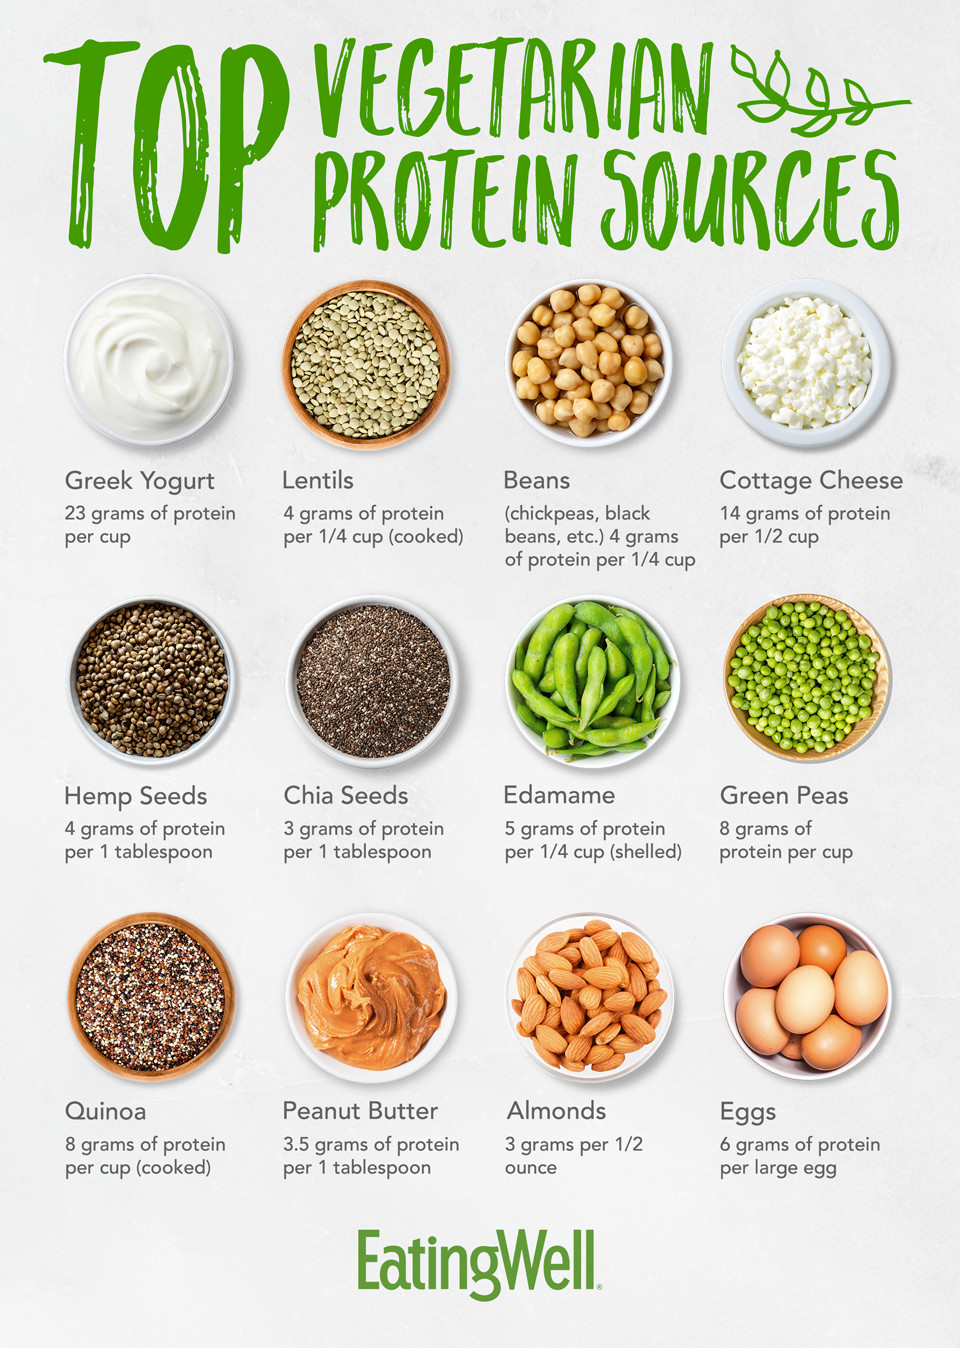 Sources Of Protein In Vegetarian Diet  Top Ve arian Protein Sources EatingWell